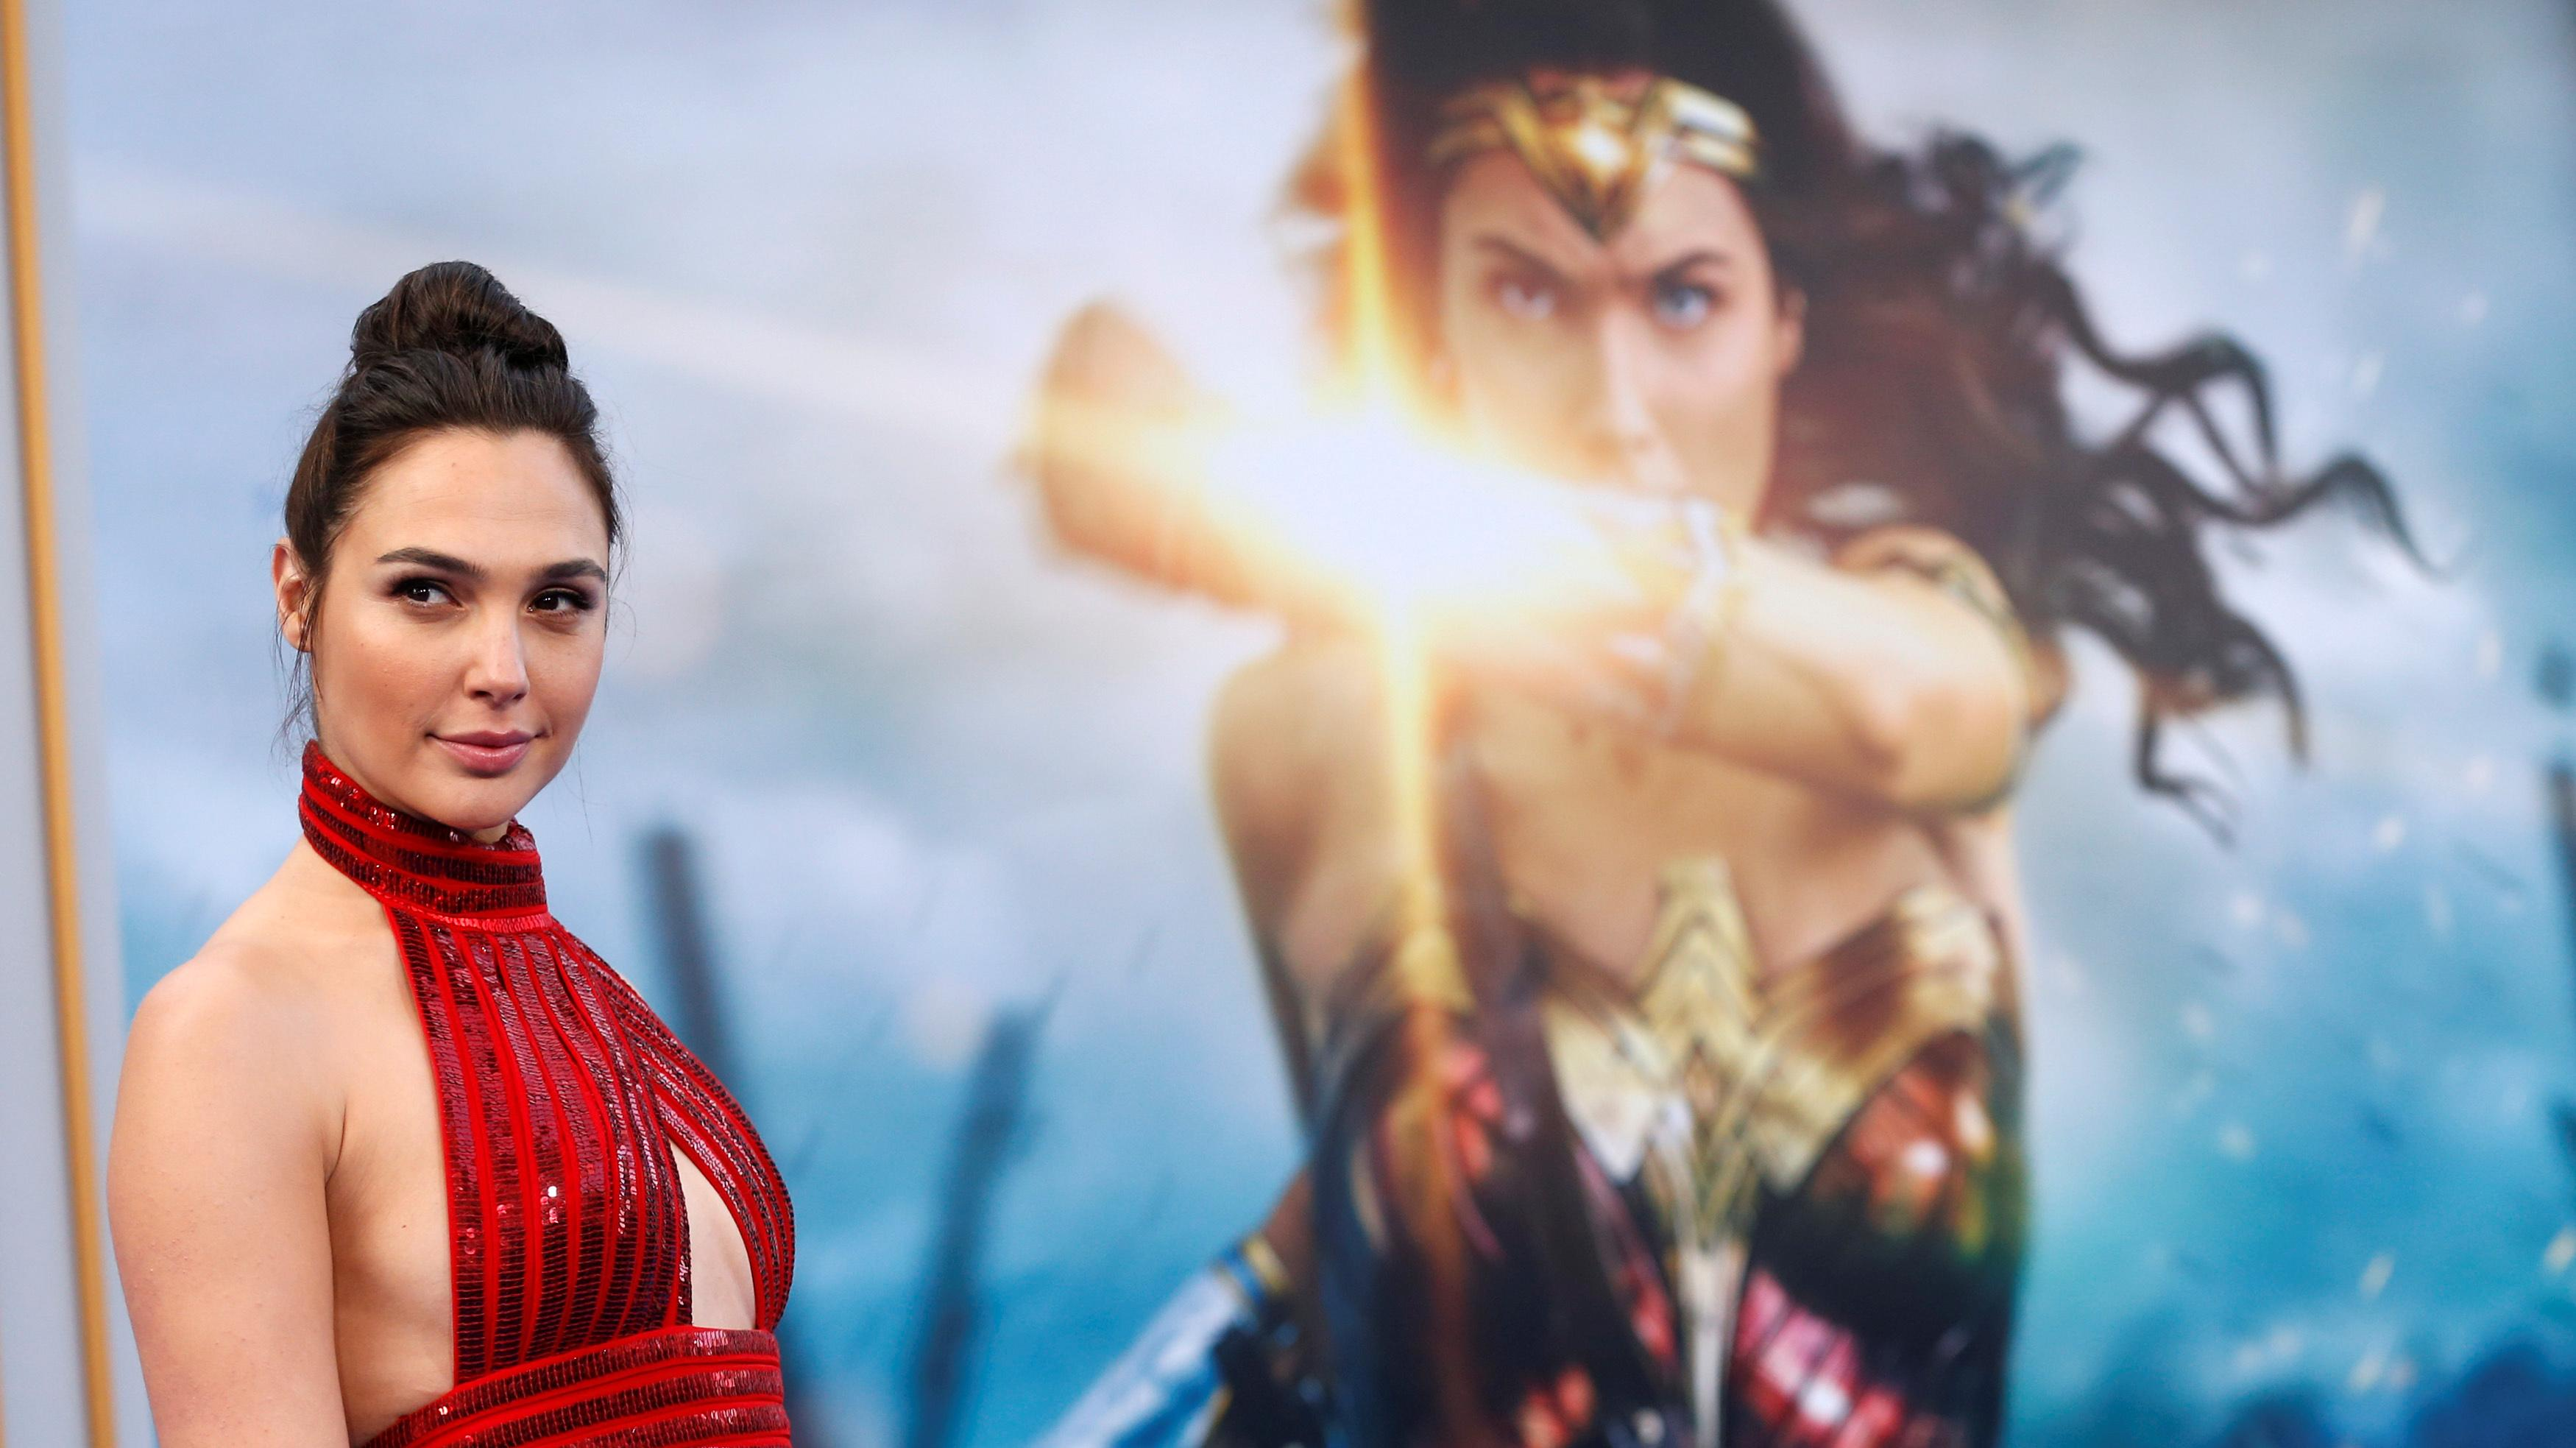 'Wonder Woman' grosses P48.39M on PH opening day